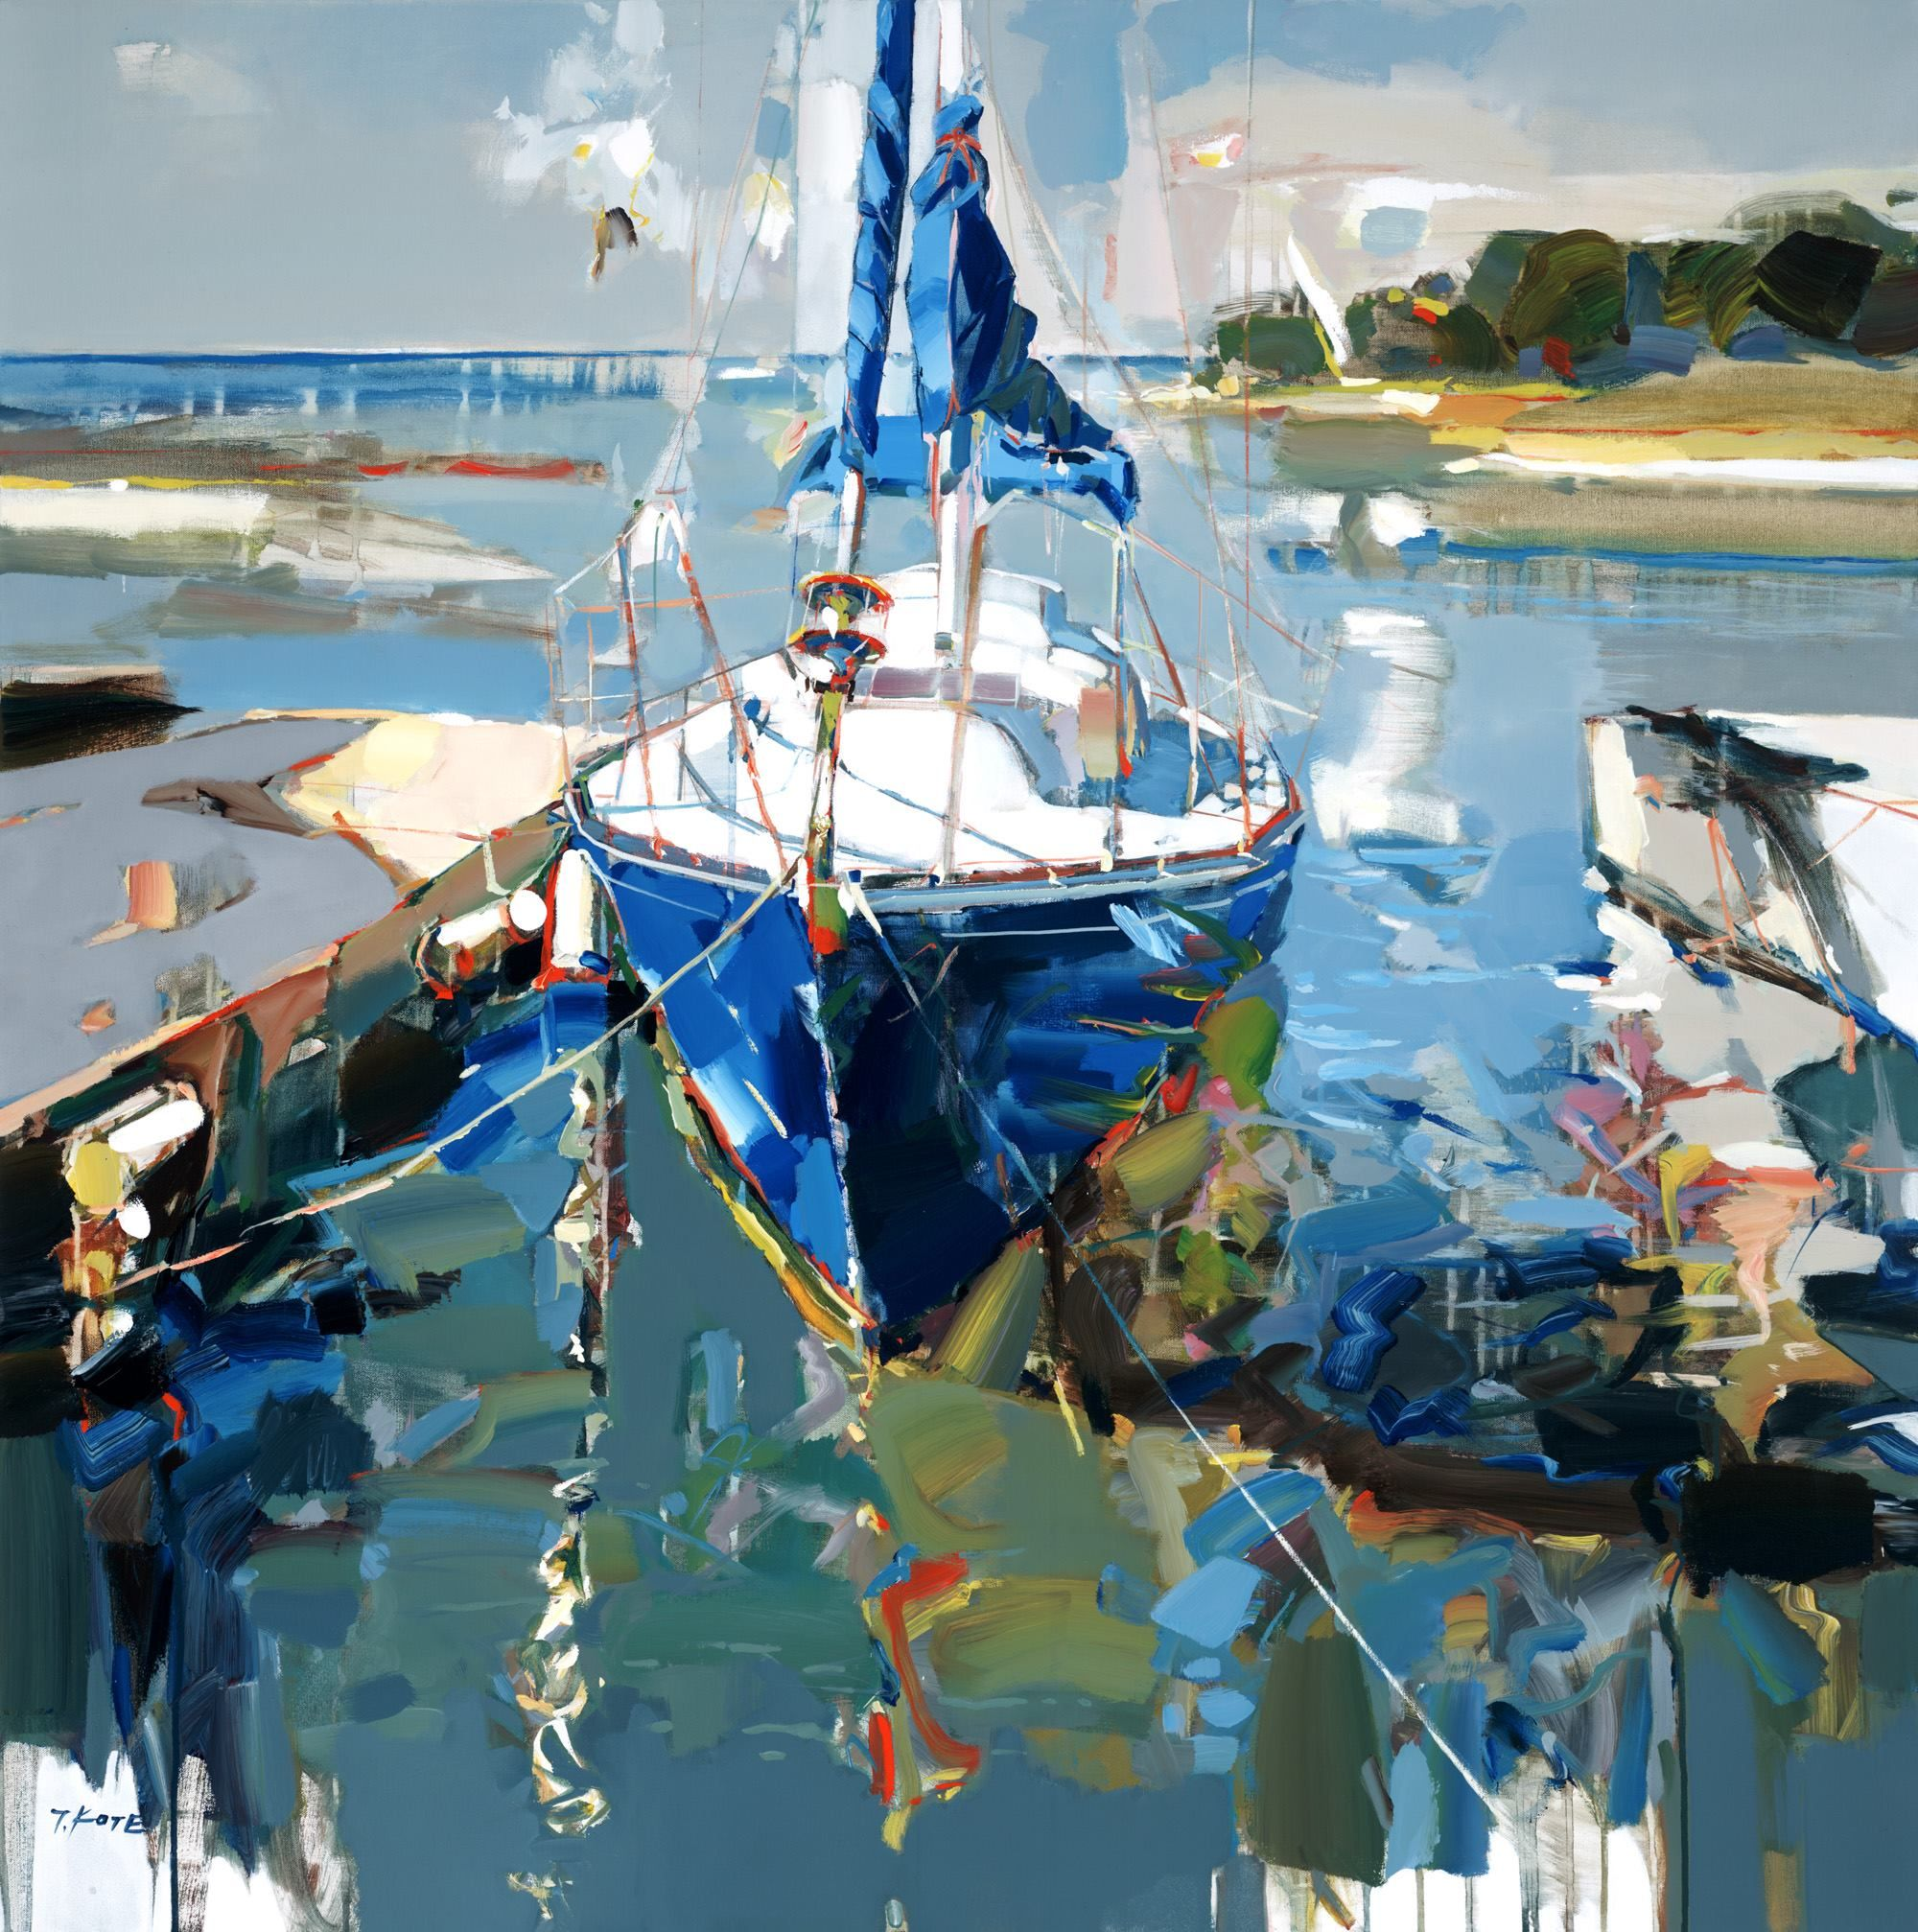 summer blues by josef kote josef kote seascapes marine pinterest peinture art et. Black Bedroom Furniture Sets. Home Design Ideas